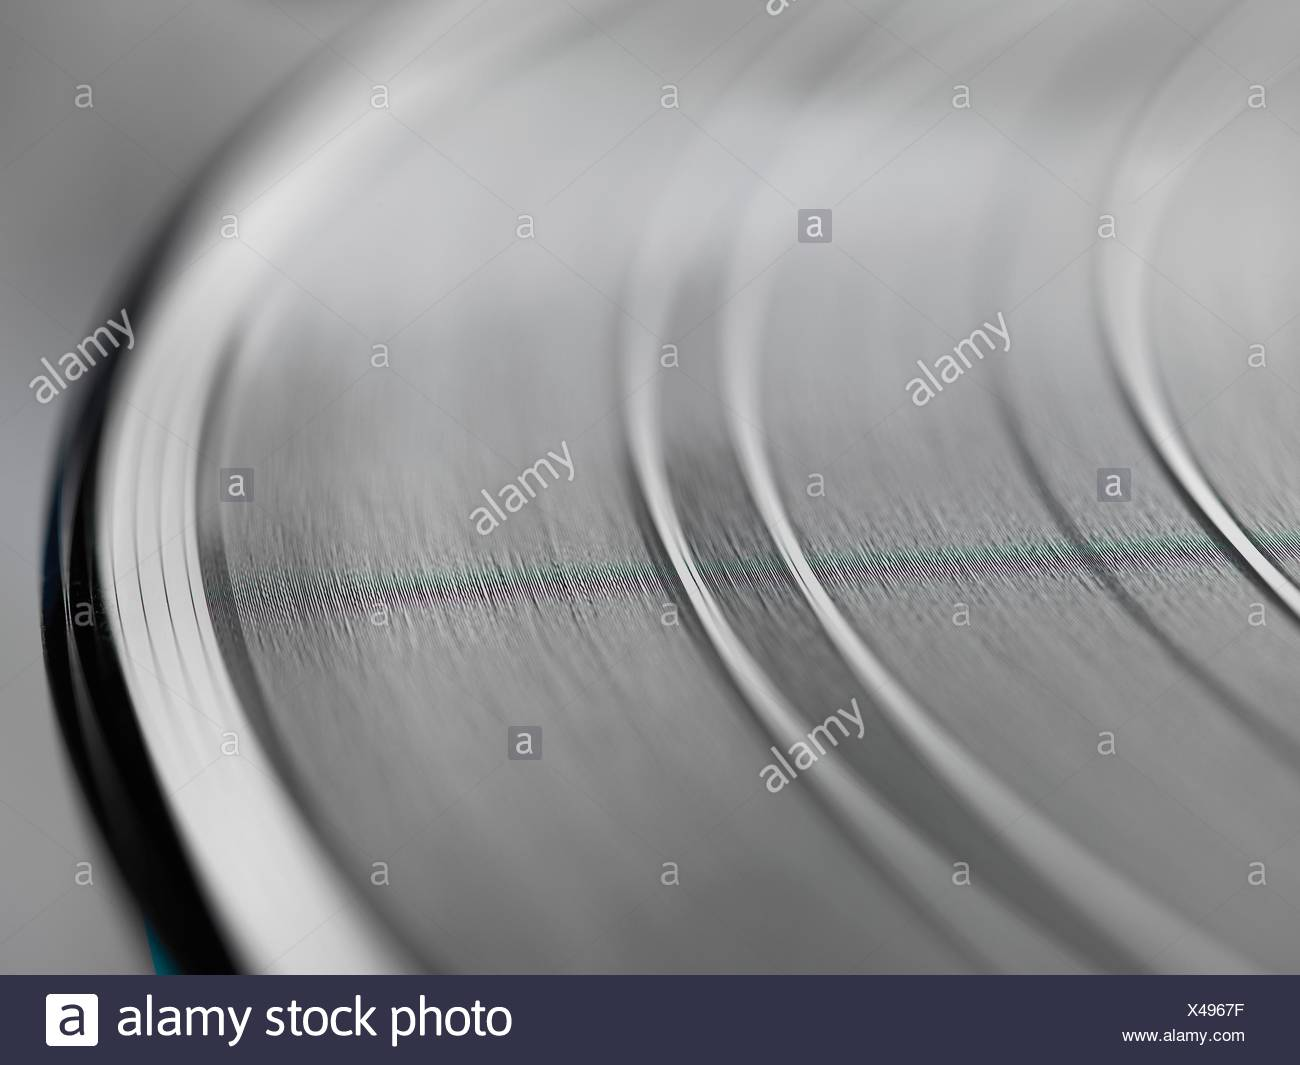 Extreme close up of grooves on a vinyl record - Stock Image